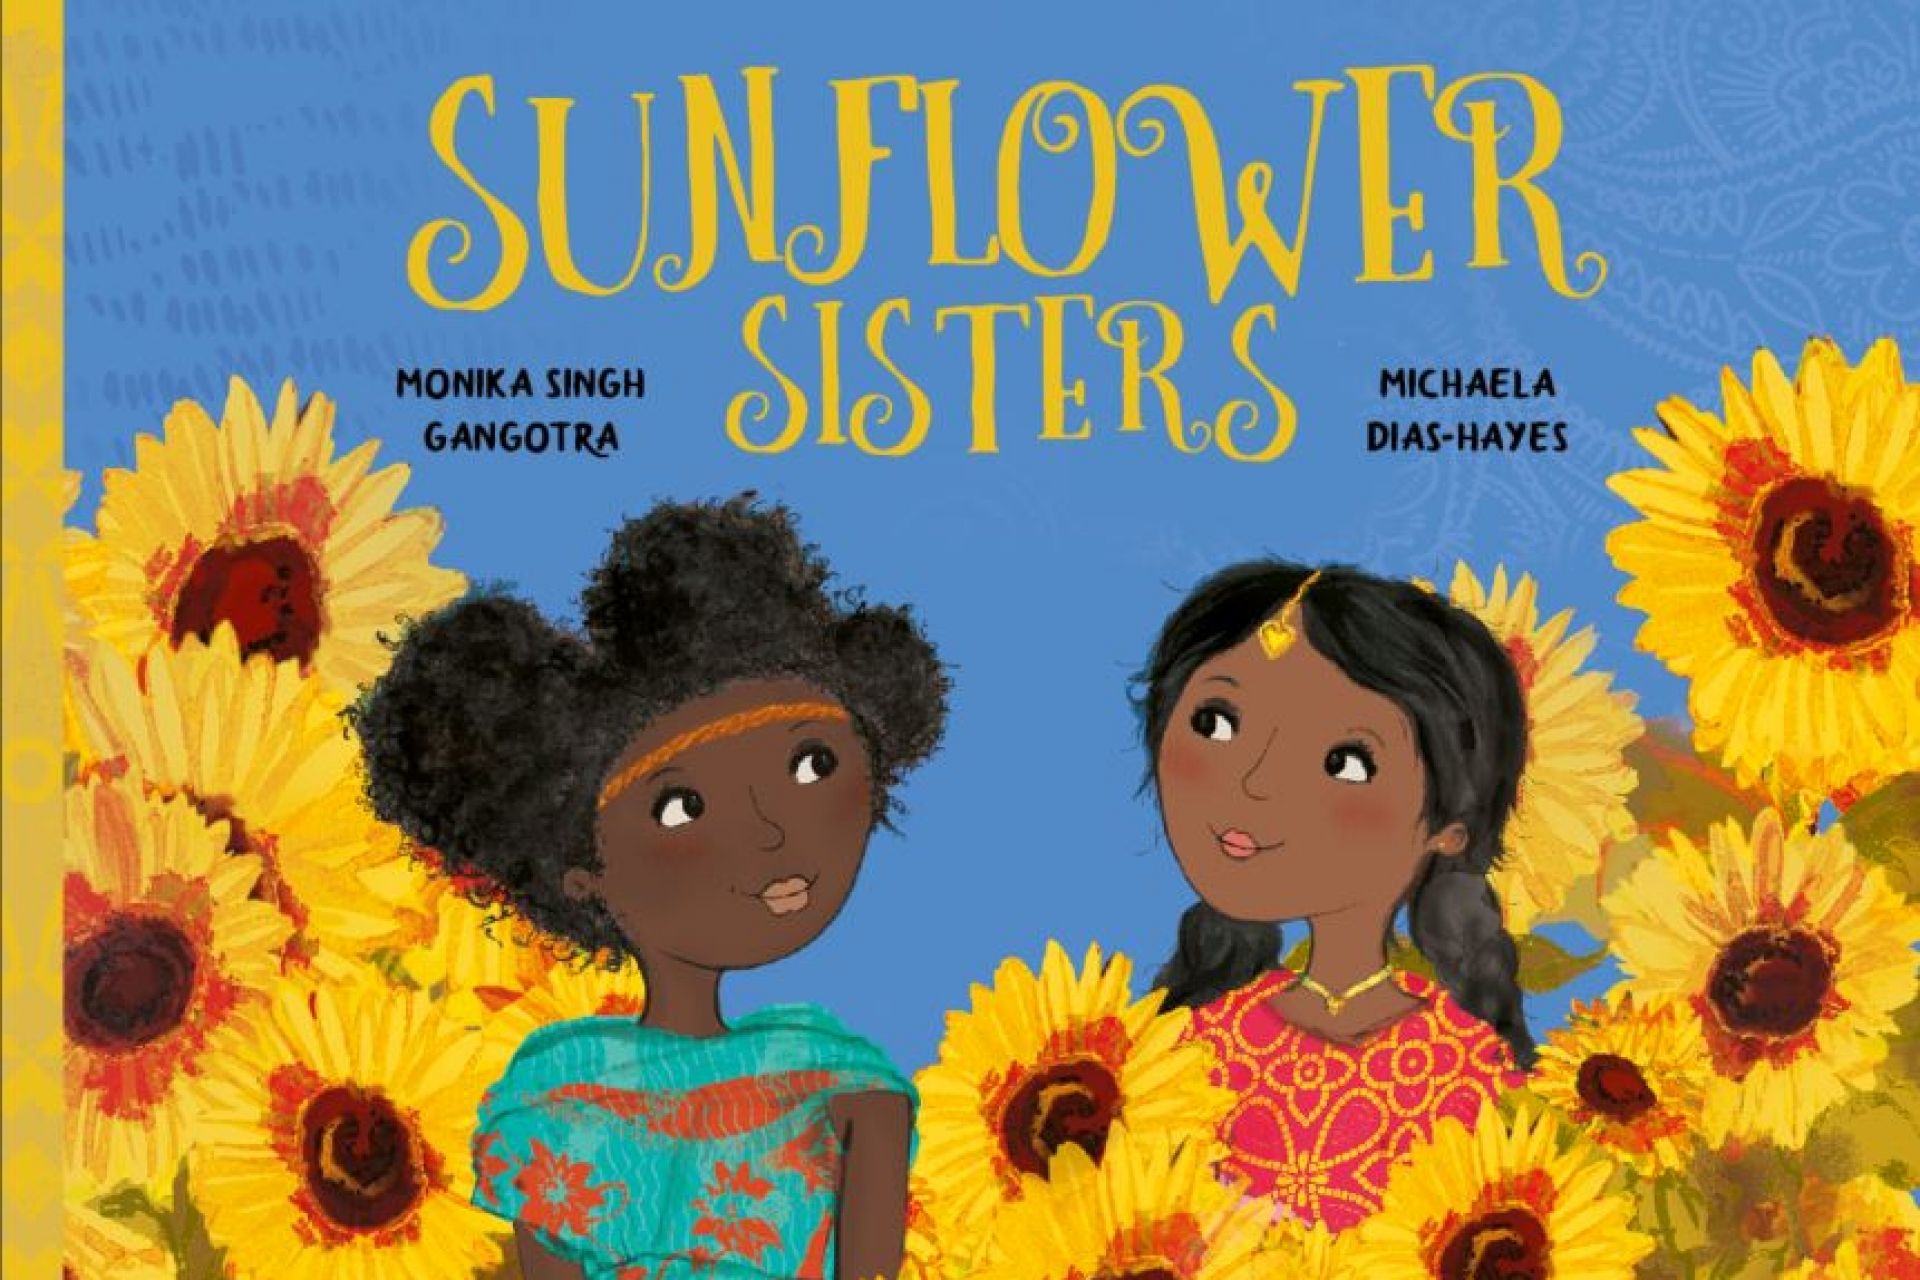 Monkia Singh Gangotra addresses colourism in her debut picture book, Sunflower Sisters